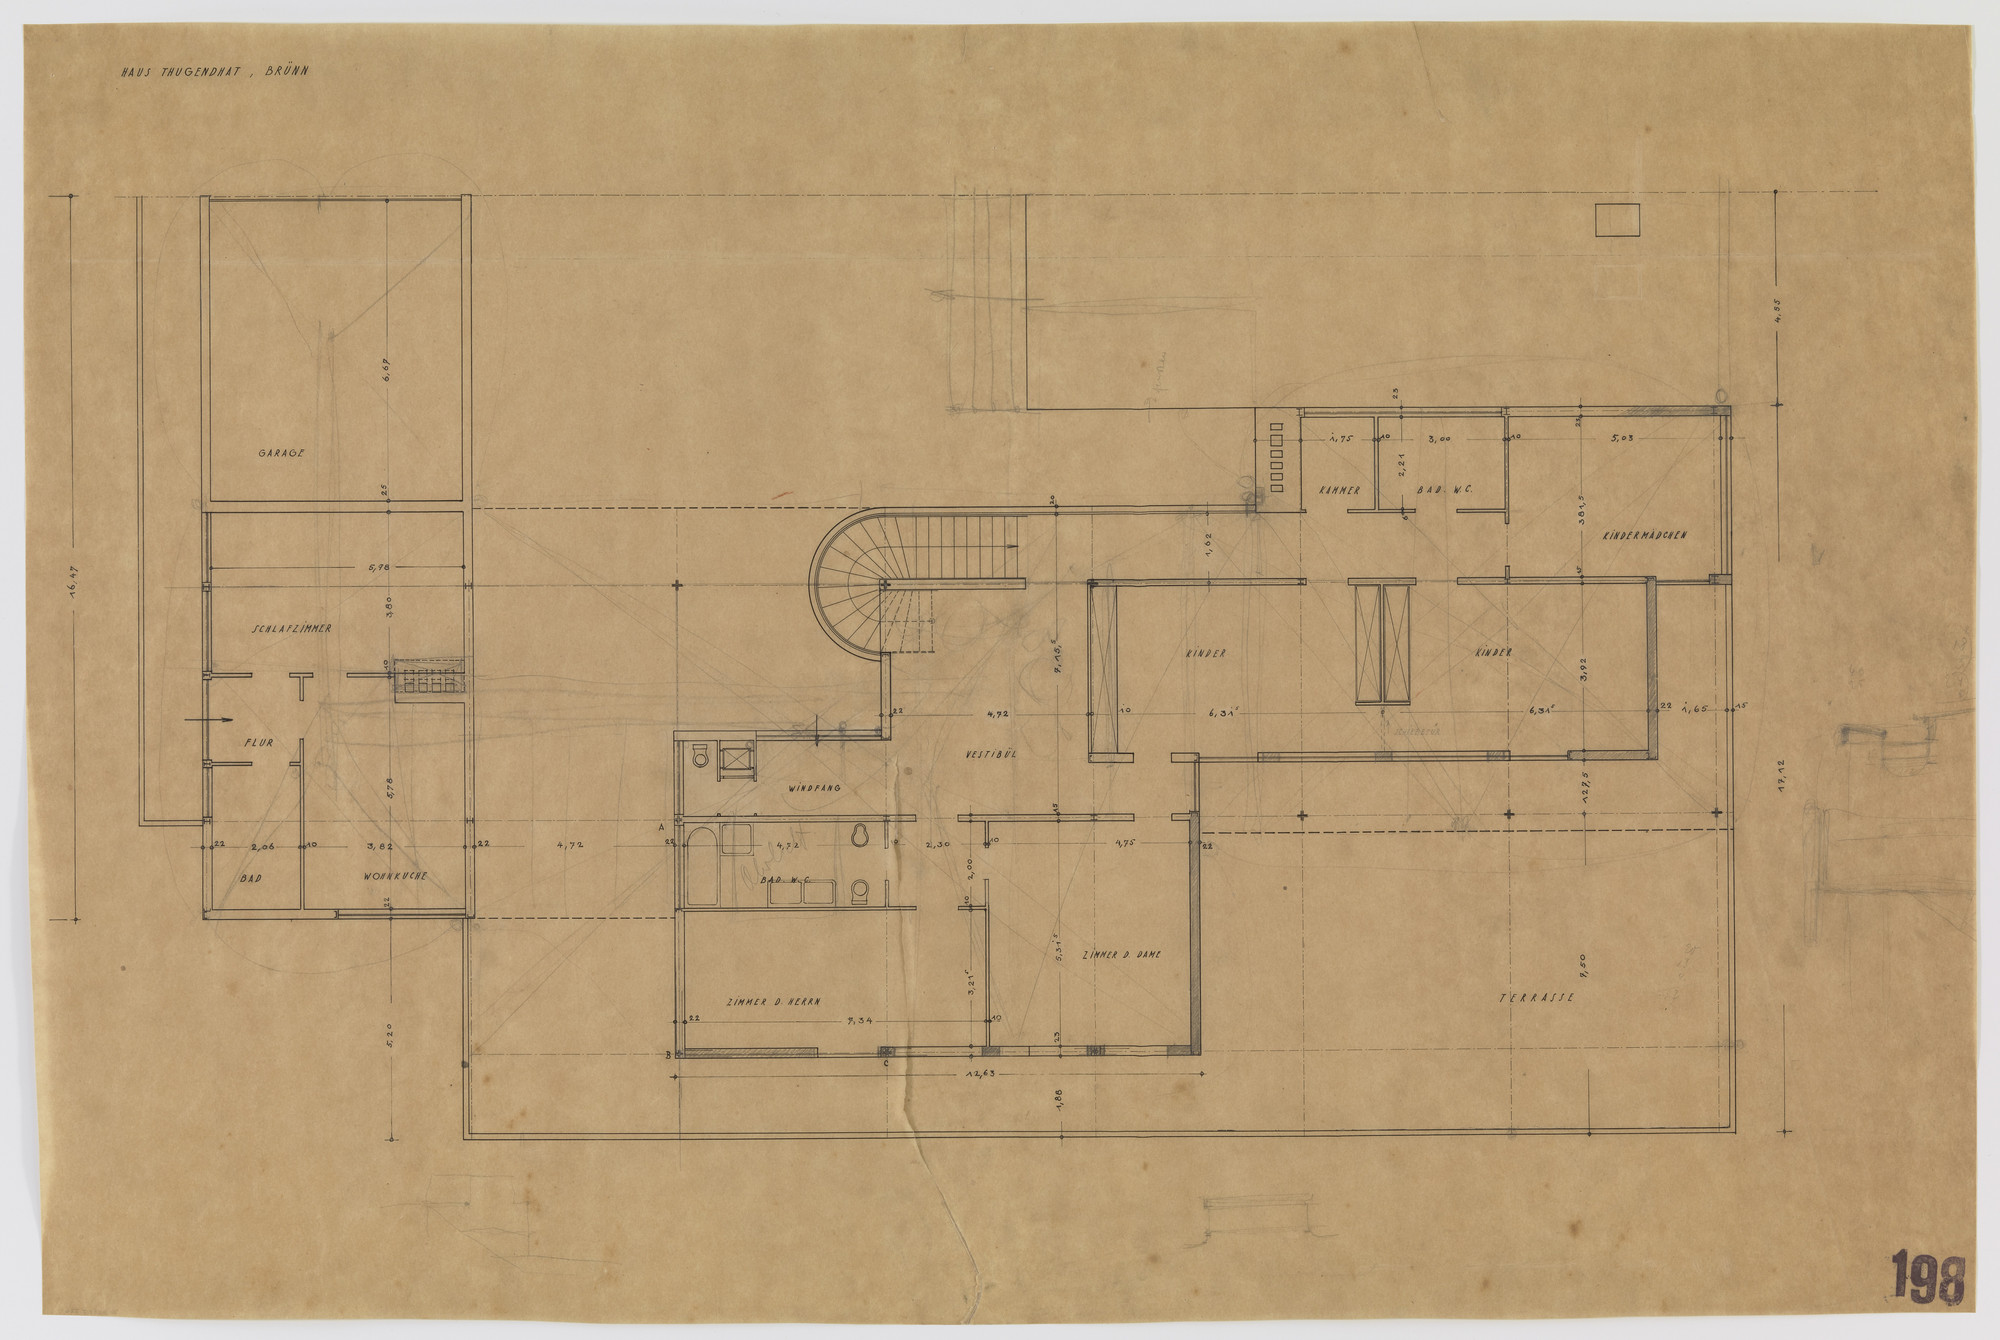 Ludwig Mies van der Rohe. Tugendhat House, Brno, Czech Republic (Upper floor plan). 1928-1930